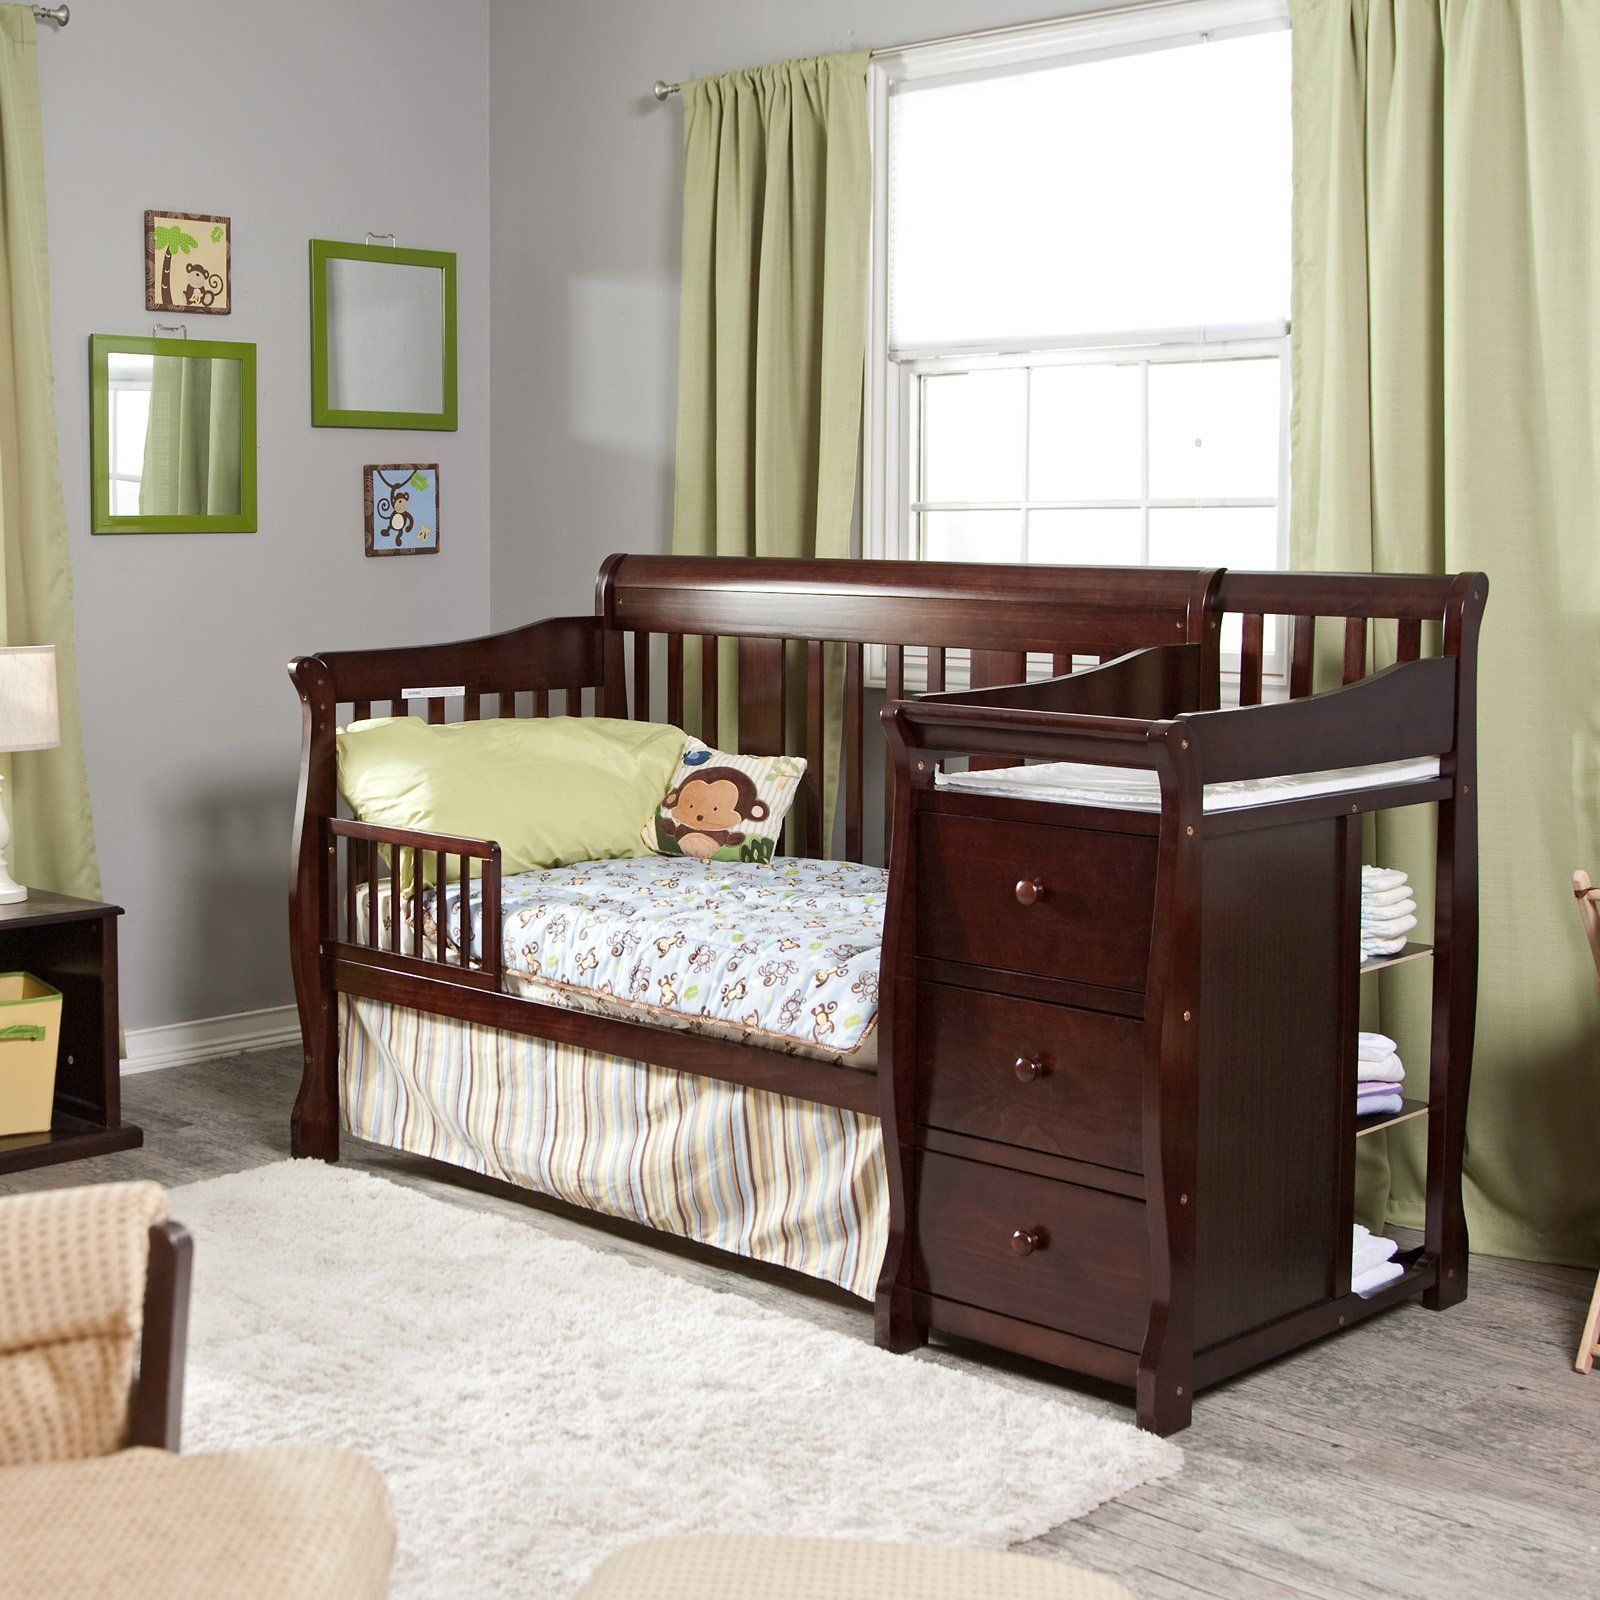 Furniture Set With Convertible Baby Crib